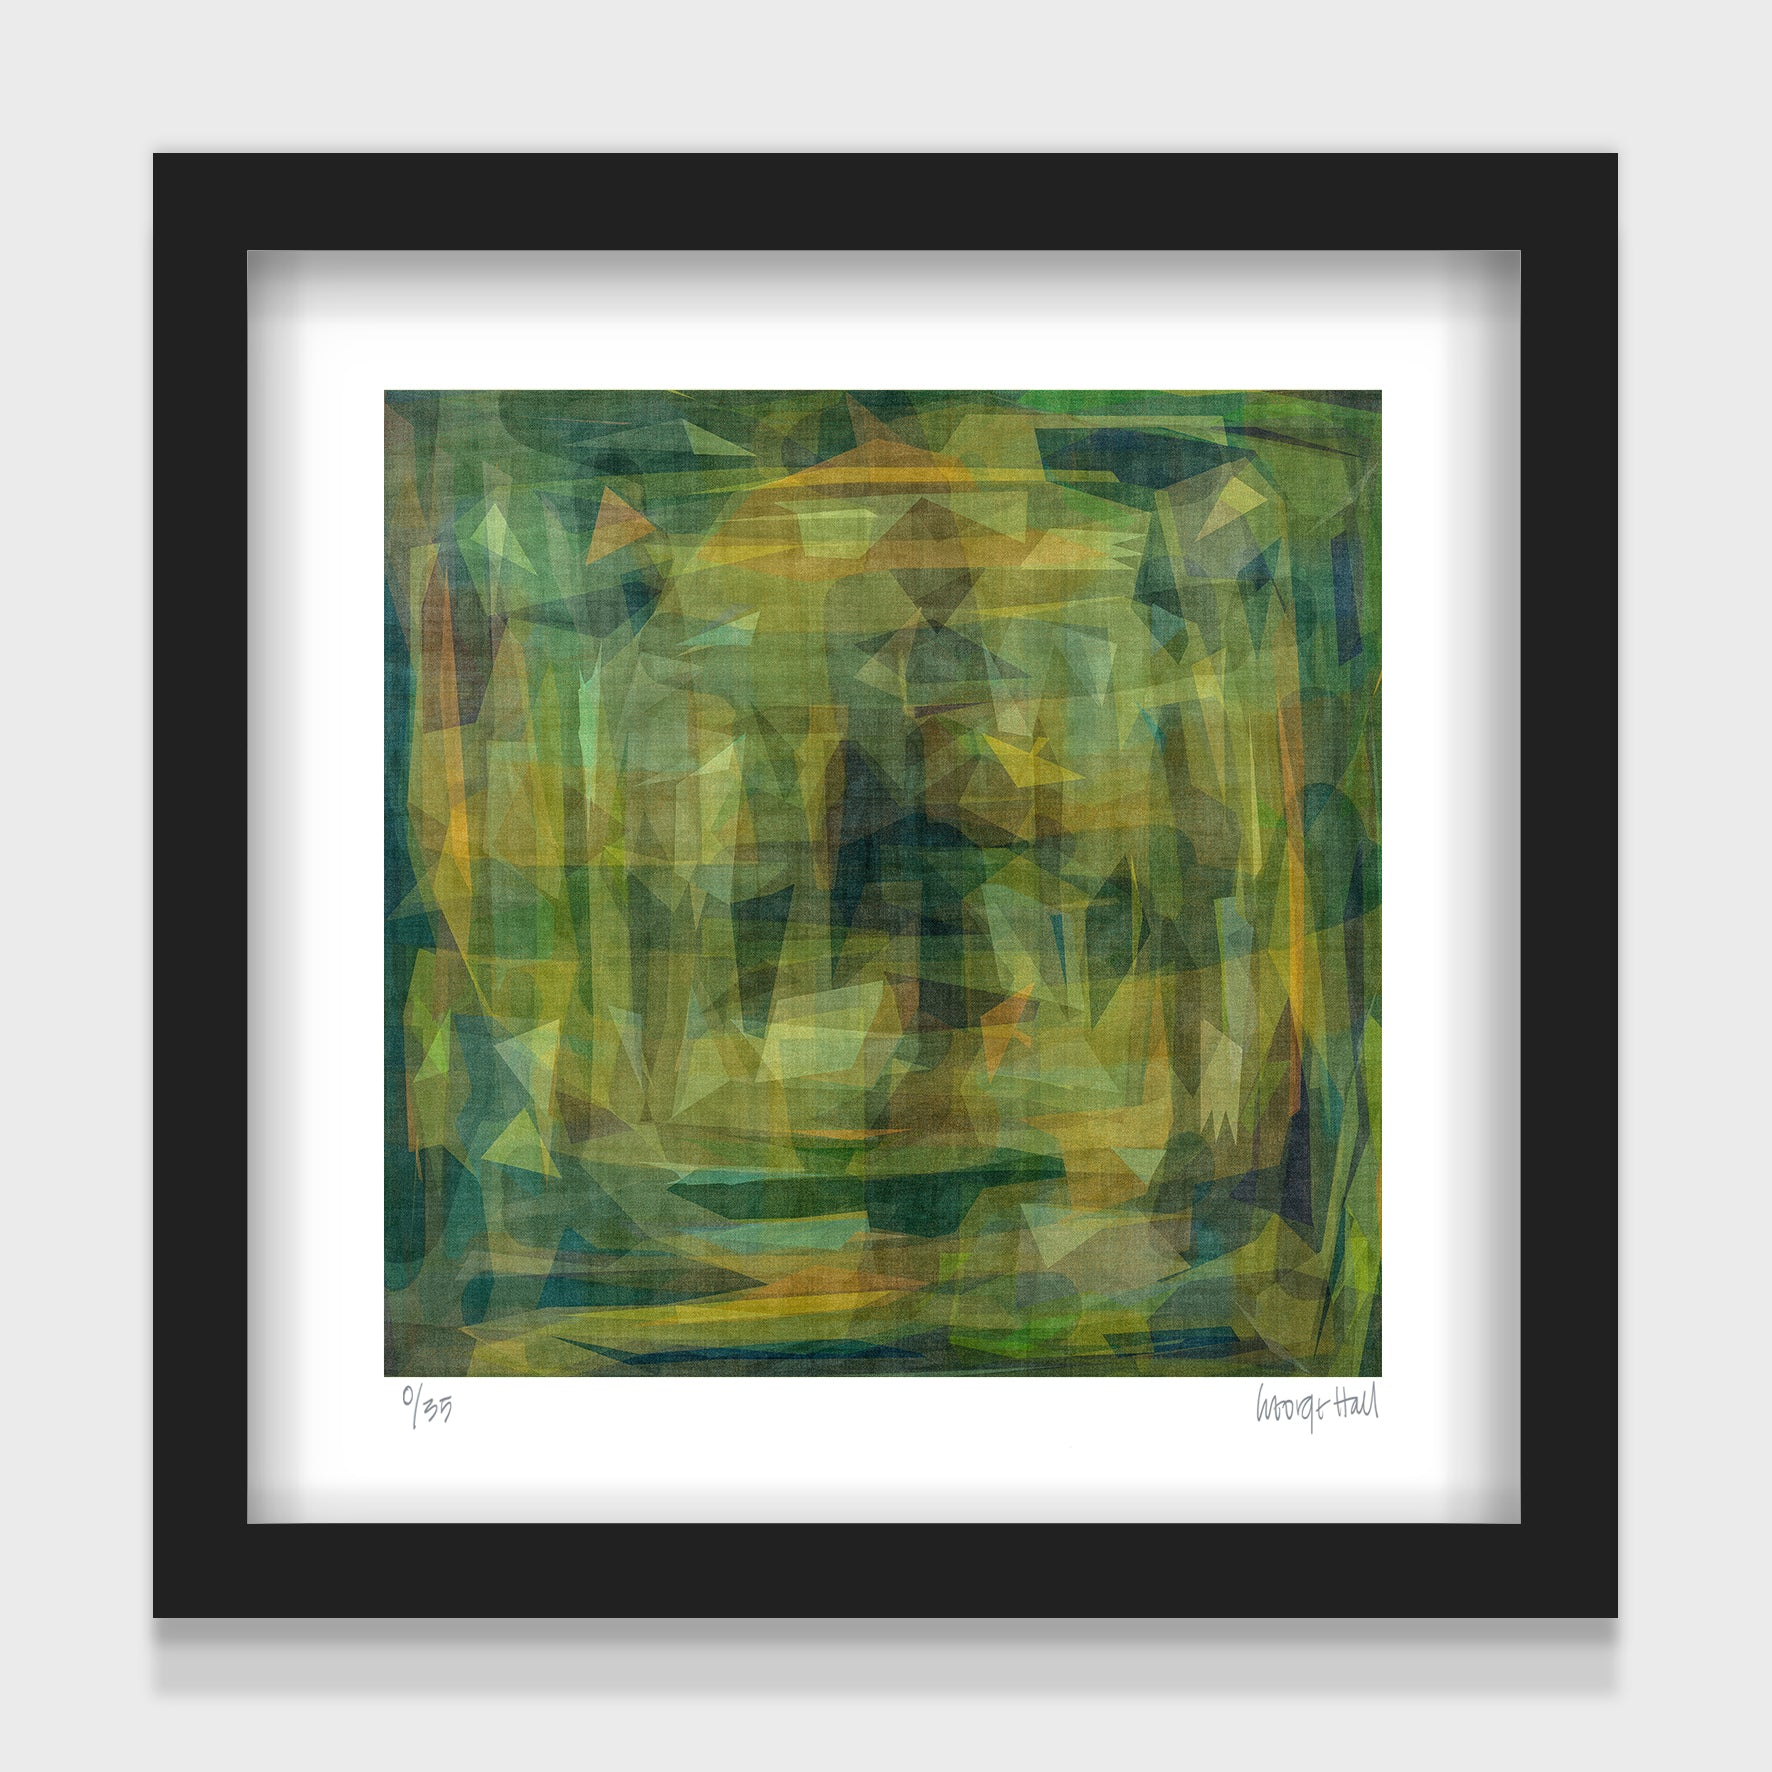 Green Harvest - 25cm - White/Black Framed or Unframed